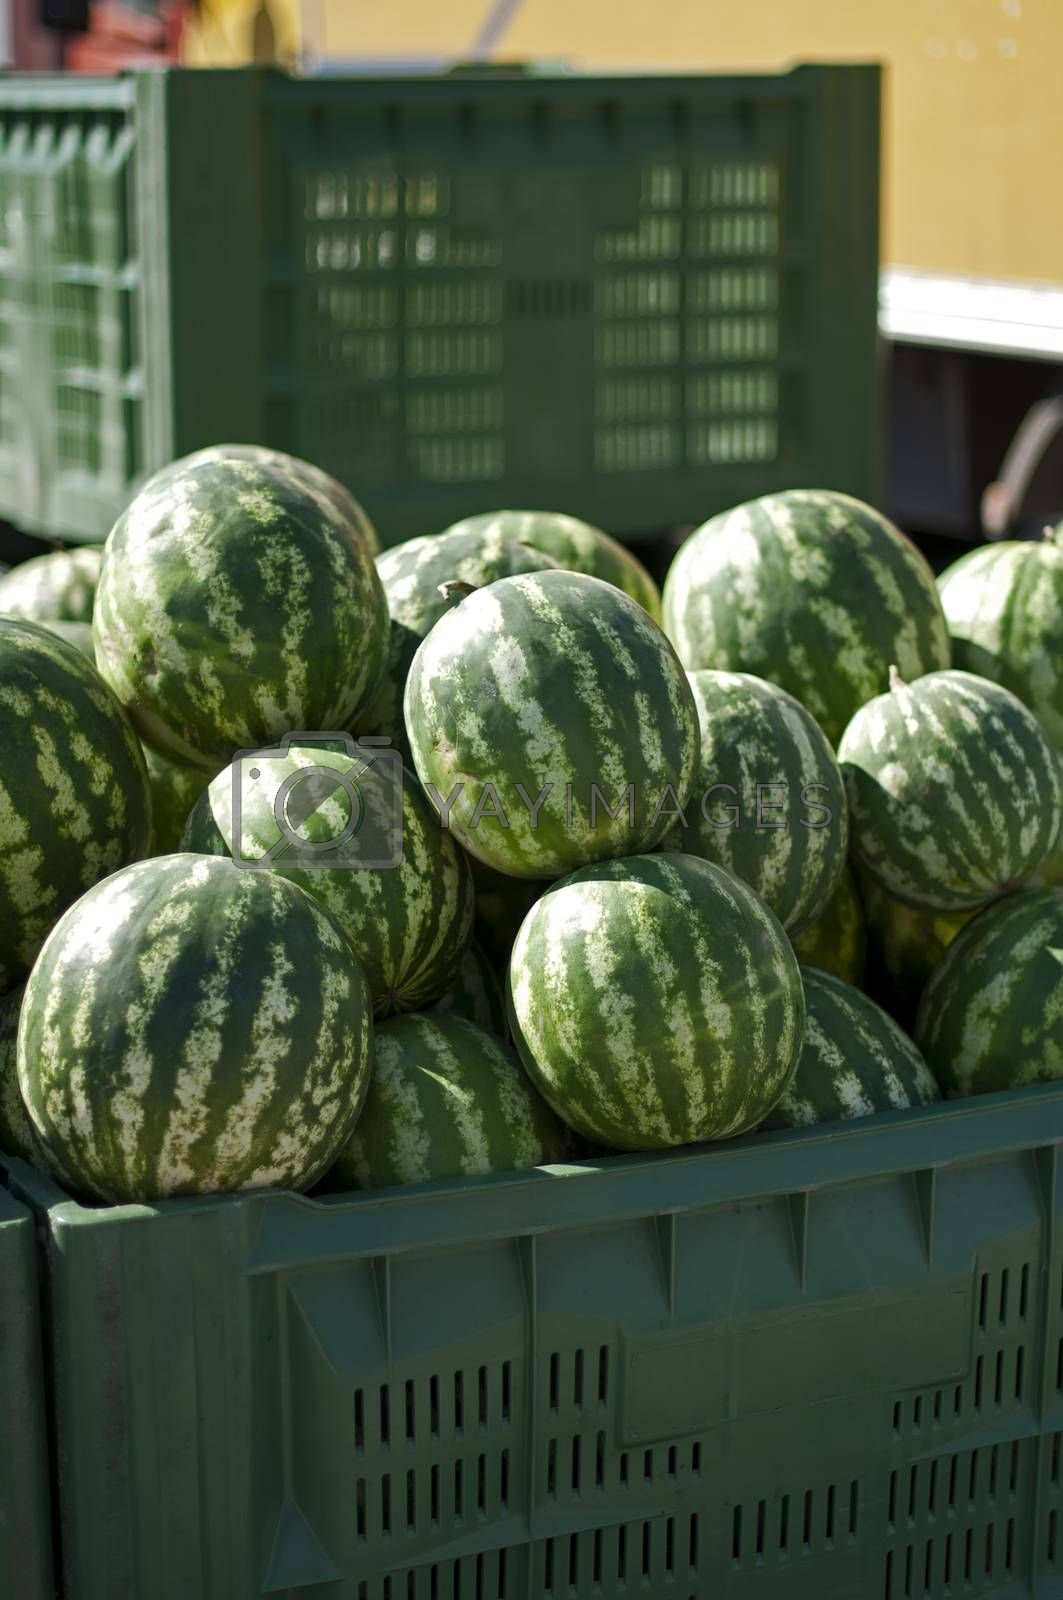 Watermelons in large crates in Wholesale market